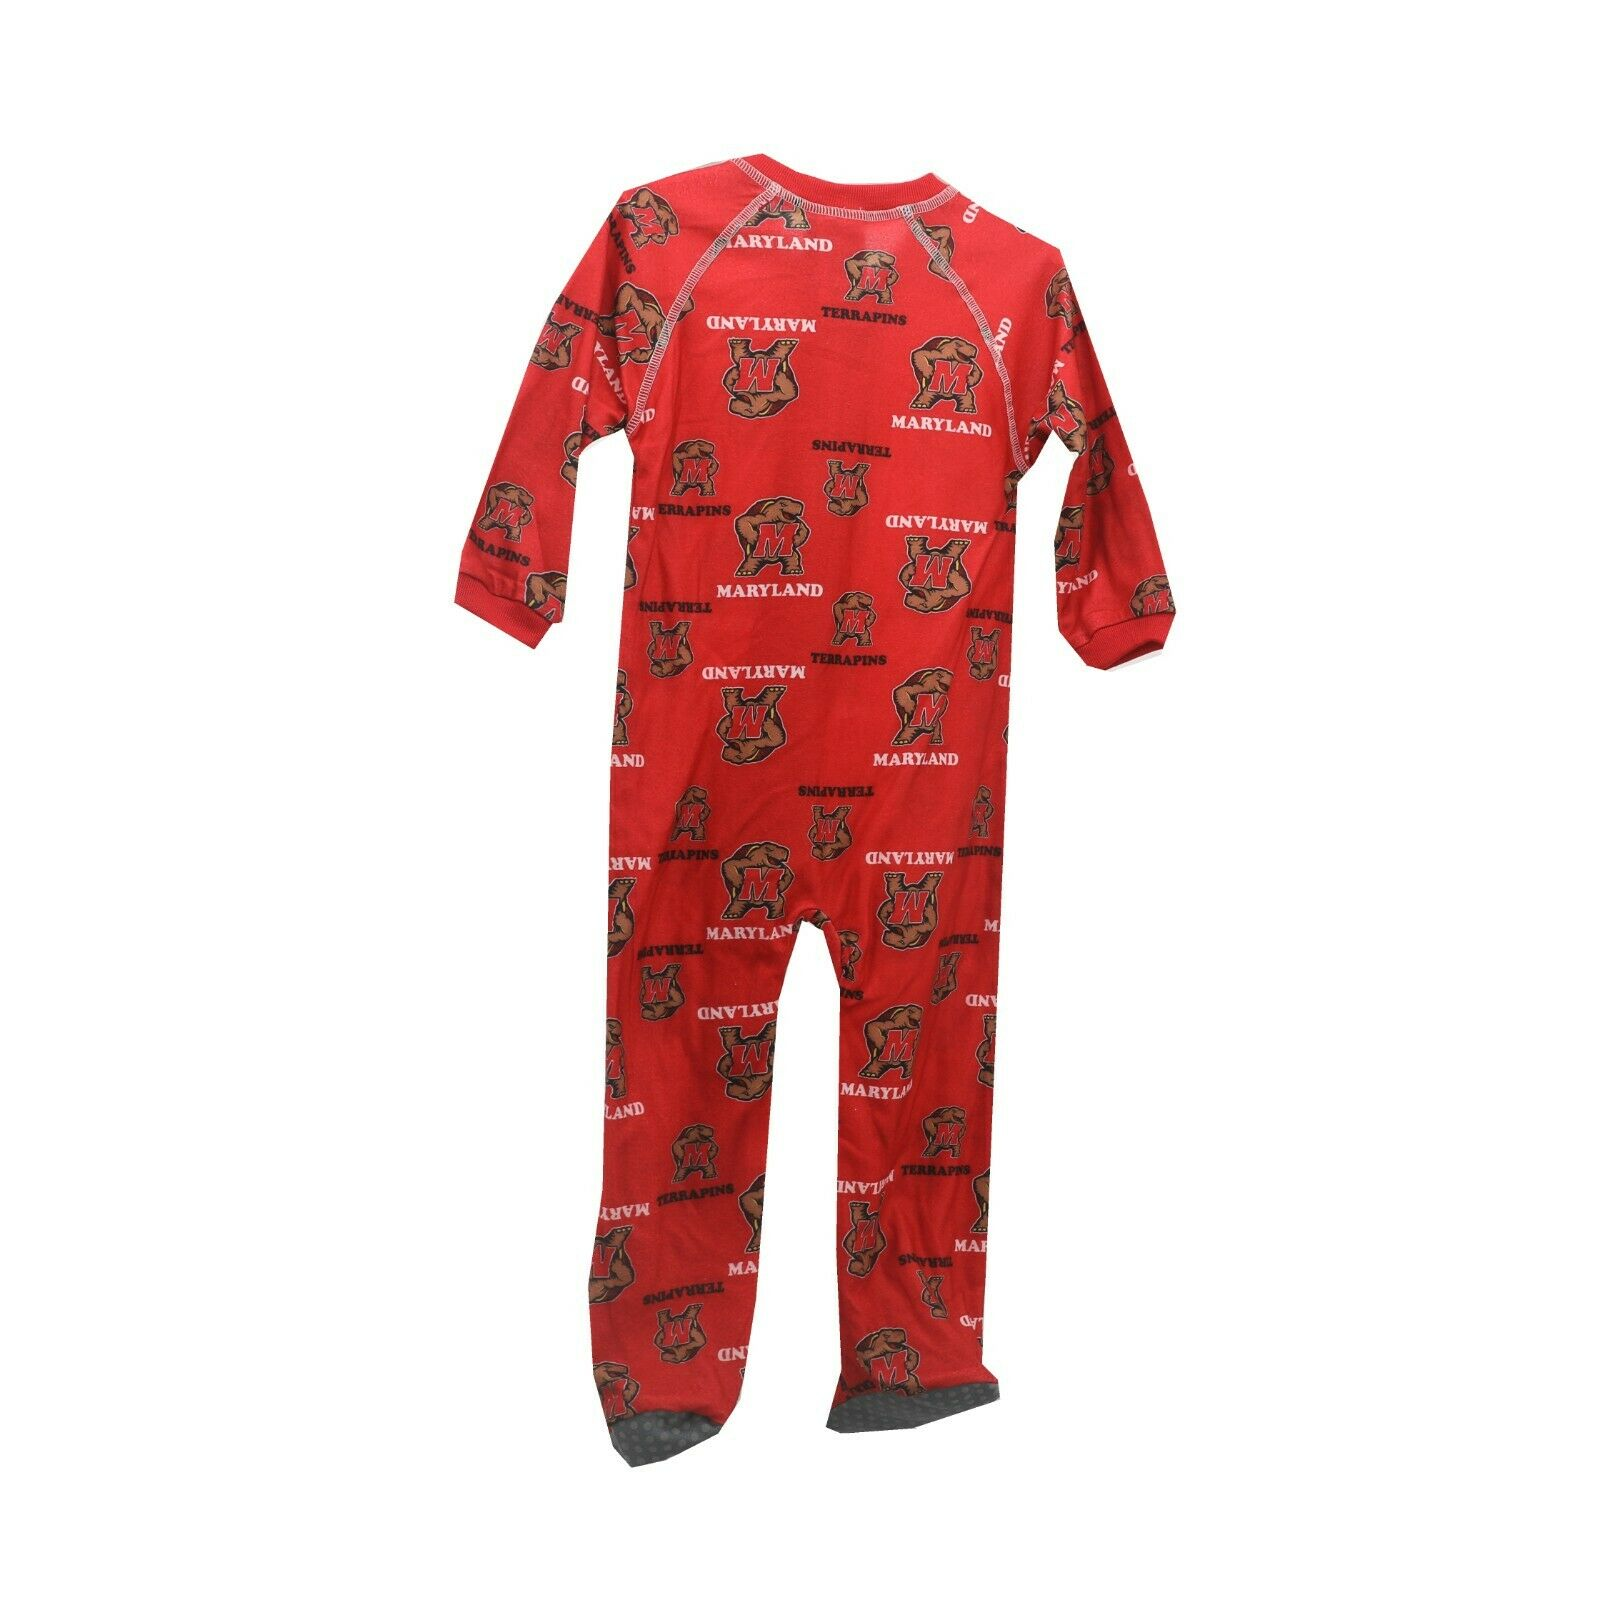 7f016c4e6 Maryland Terrapins Official NCAA Baby Infant Size Pajama Sleeper Bodysuit  New